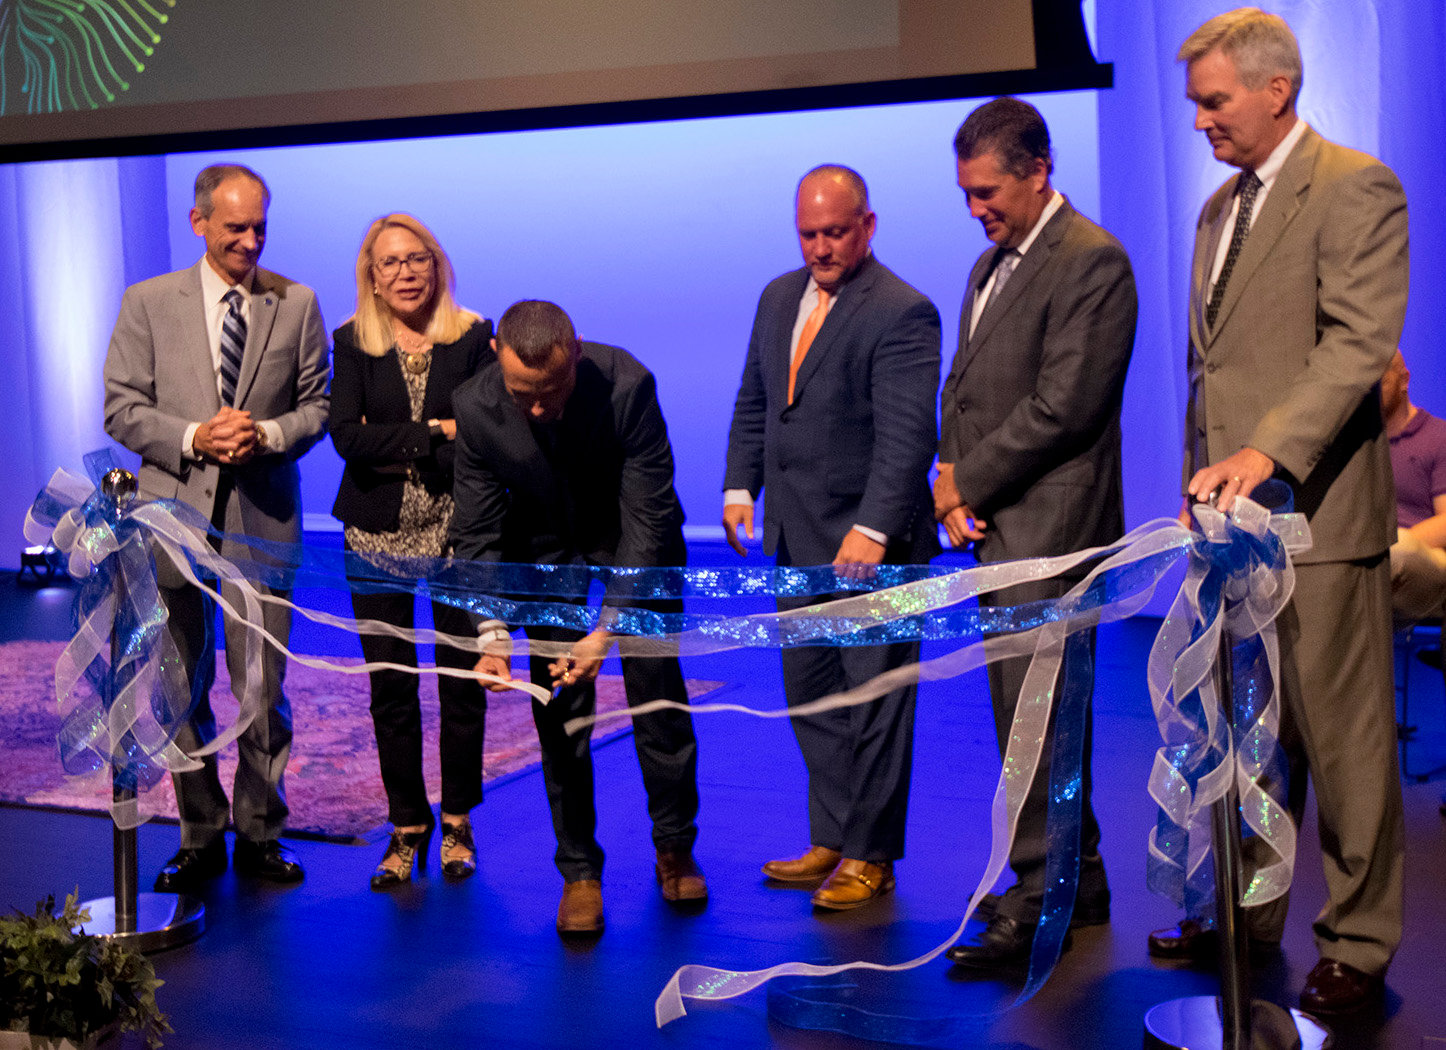 John Mason, Madlyn Hanes, Dr. Weston Kensinger, George P. Hartwick, Tom Mehaffie and Mike Bangs cut the ribbon for the Douglas W. Pollock Center for Addiction Outreach and Research on Aug. 21 during a ceremony at the Mukund S. Kulkarni Theatre at Penn State Harrisburg.